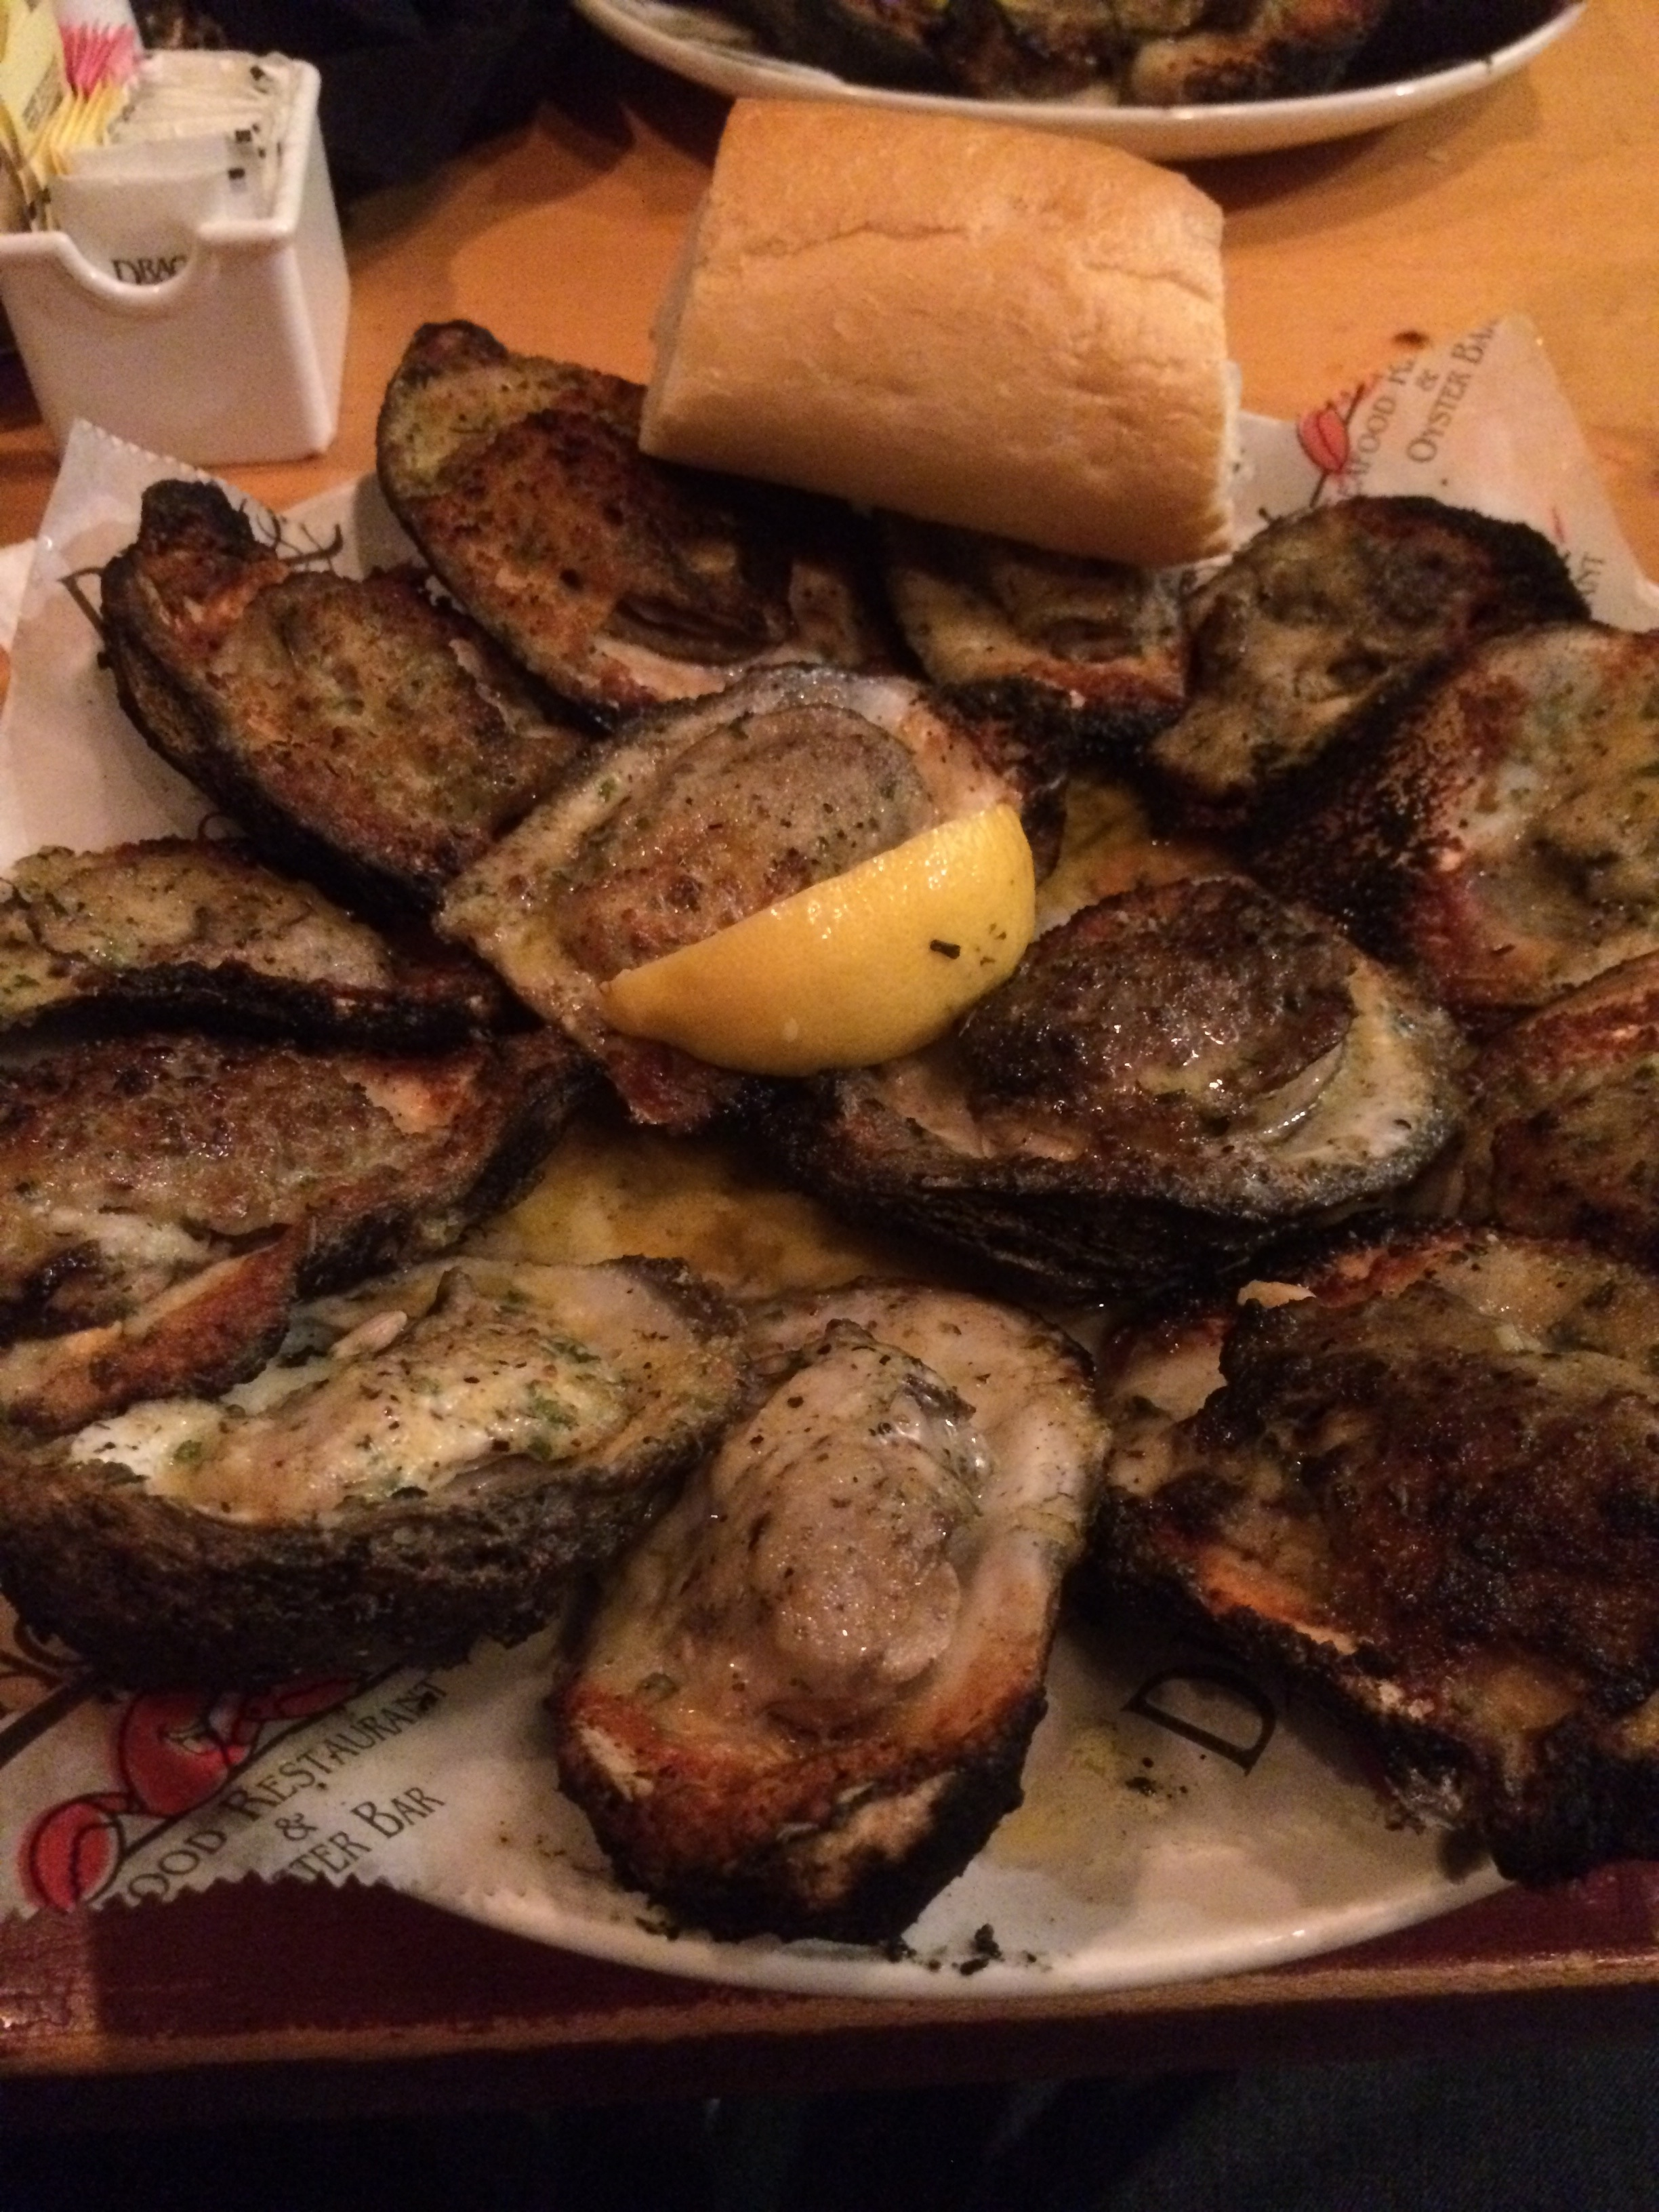 Oysters from Drago's